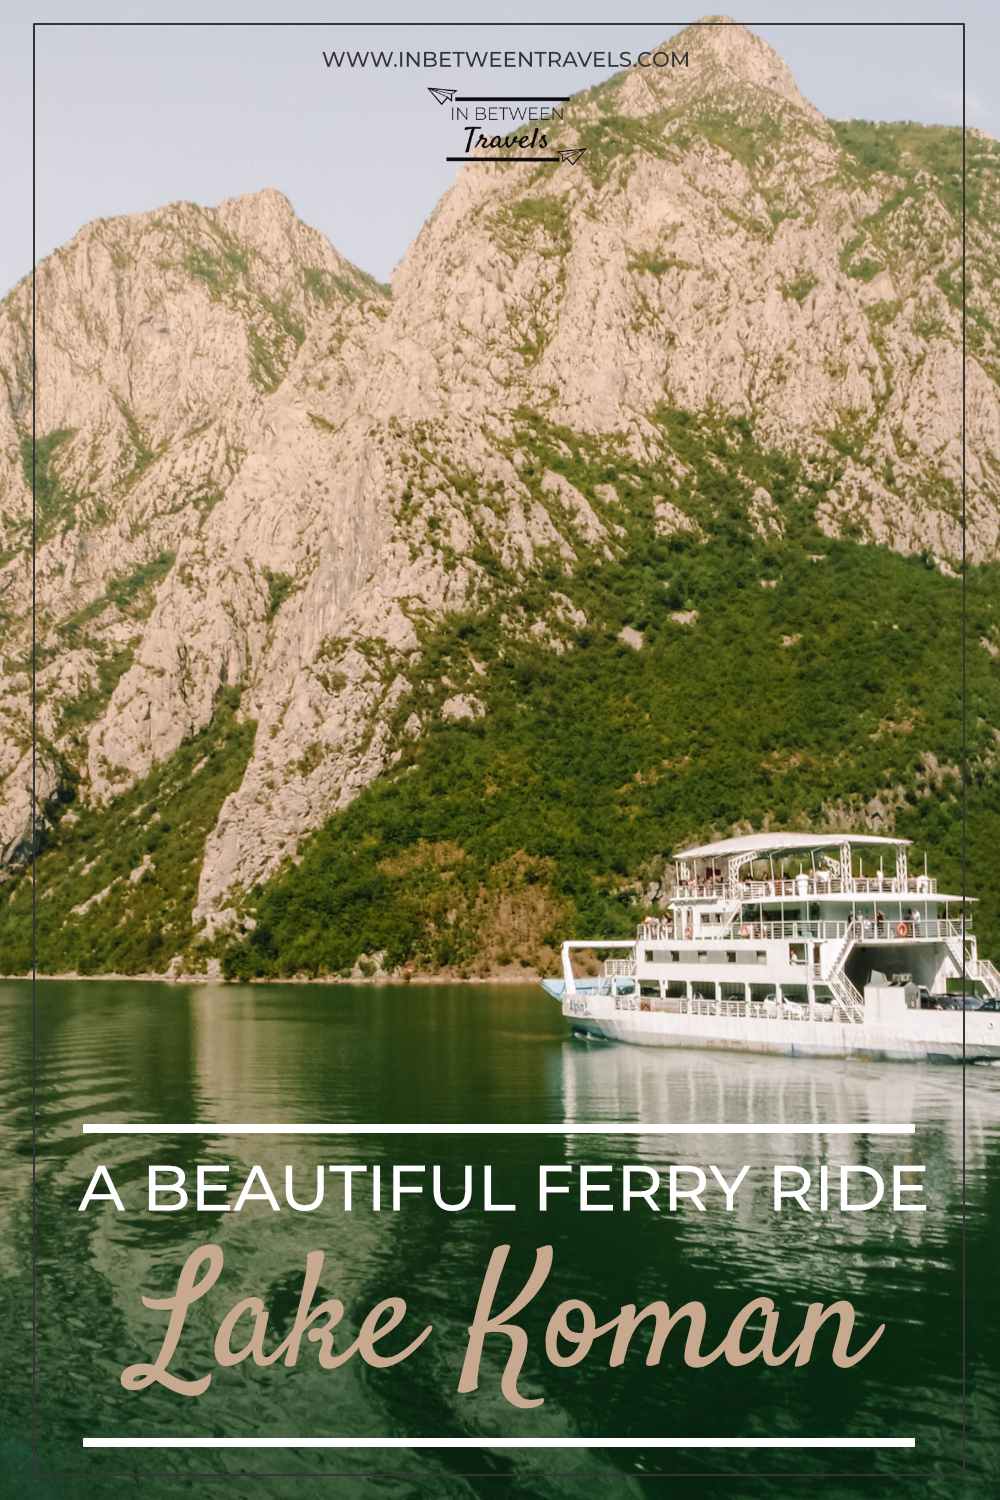 Lake Koman Ferry Ride Guide